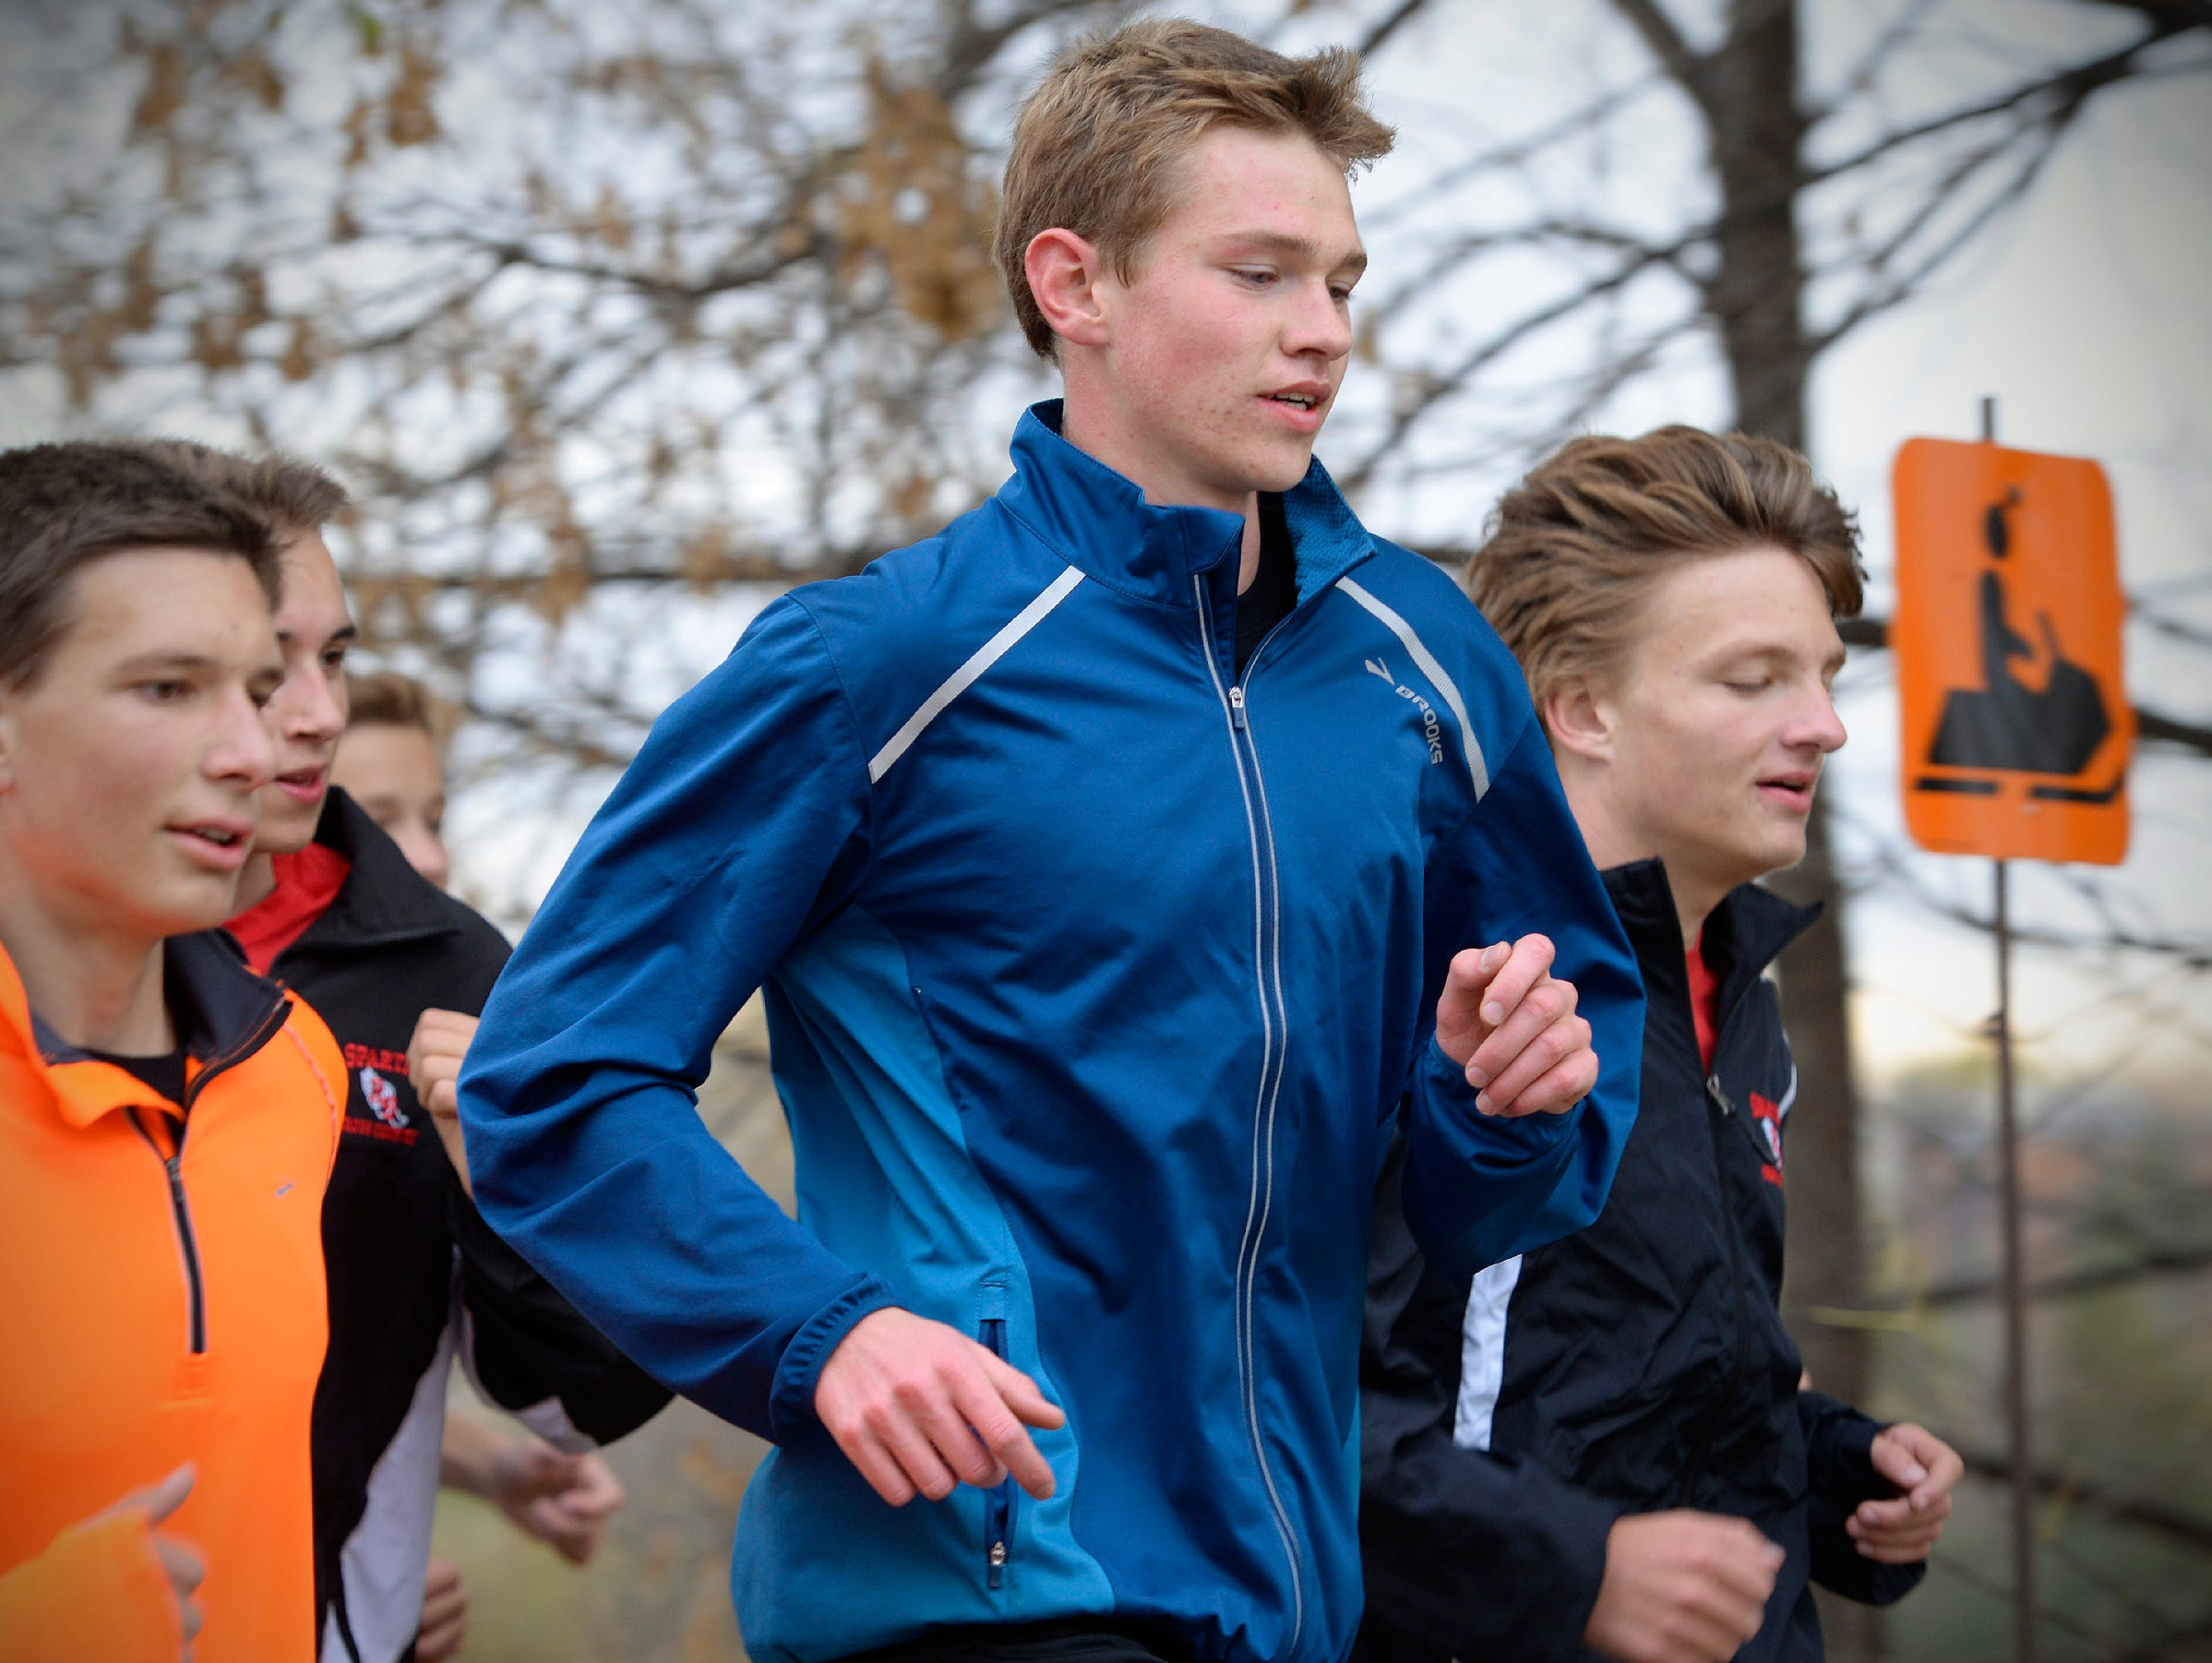 Rocori High School cross country runners Noah Lahr, center, and Will Glisky, right, and their teammates run through Cold Spring on Tuesday, Oct. 27. The Times named both Lahr and Glisky to its 2015 All-Area Boys Cross Country Team.